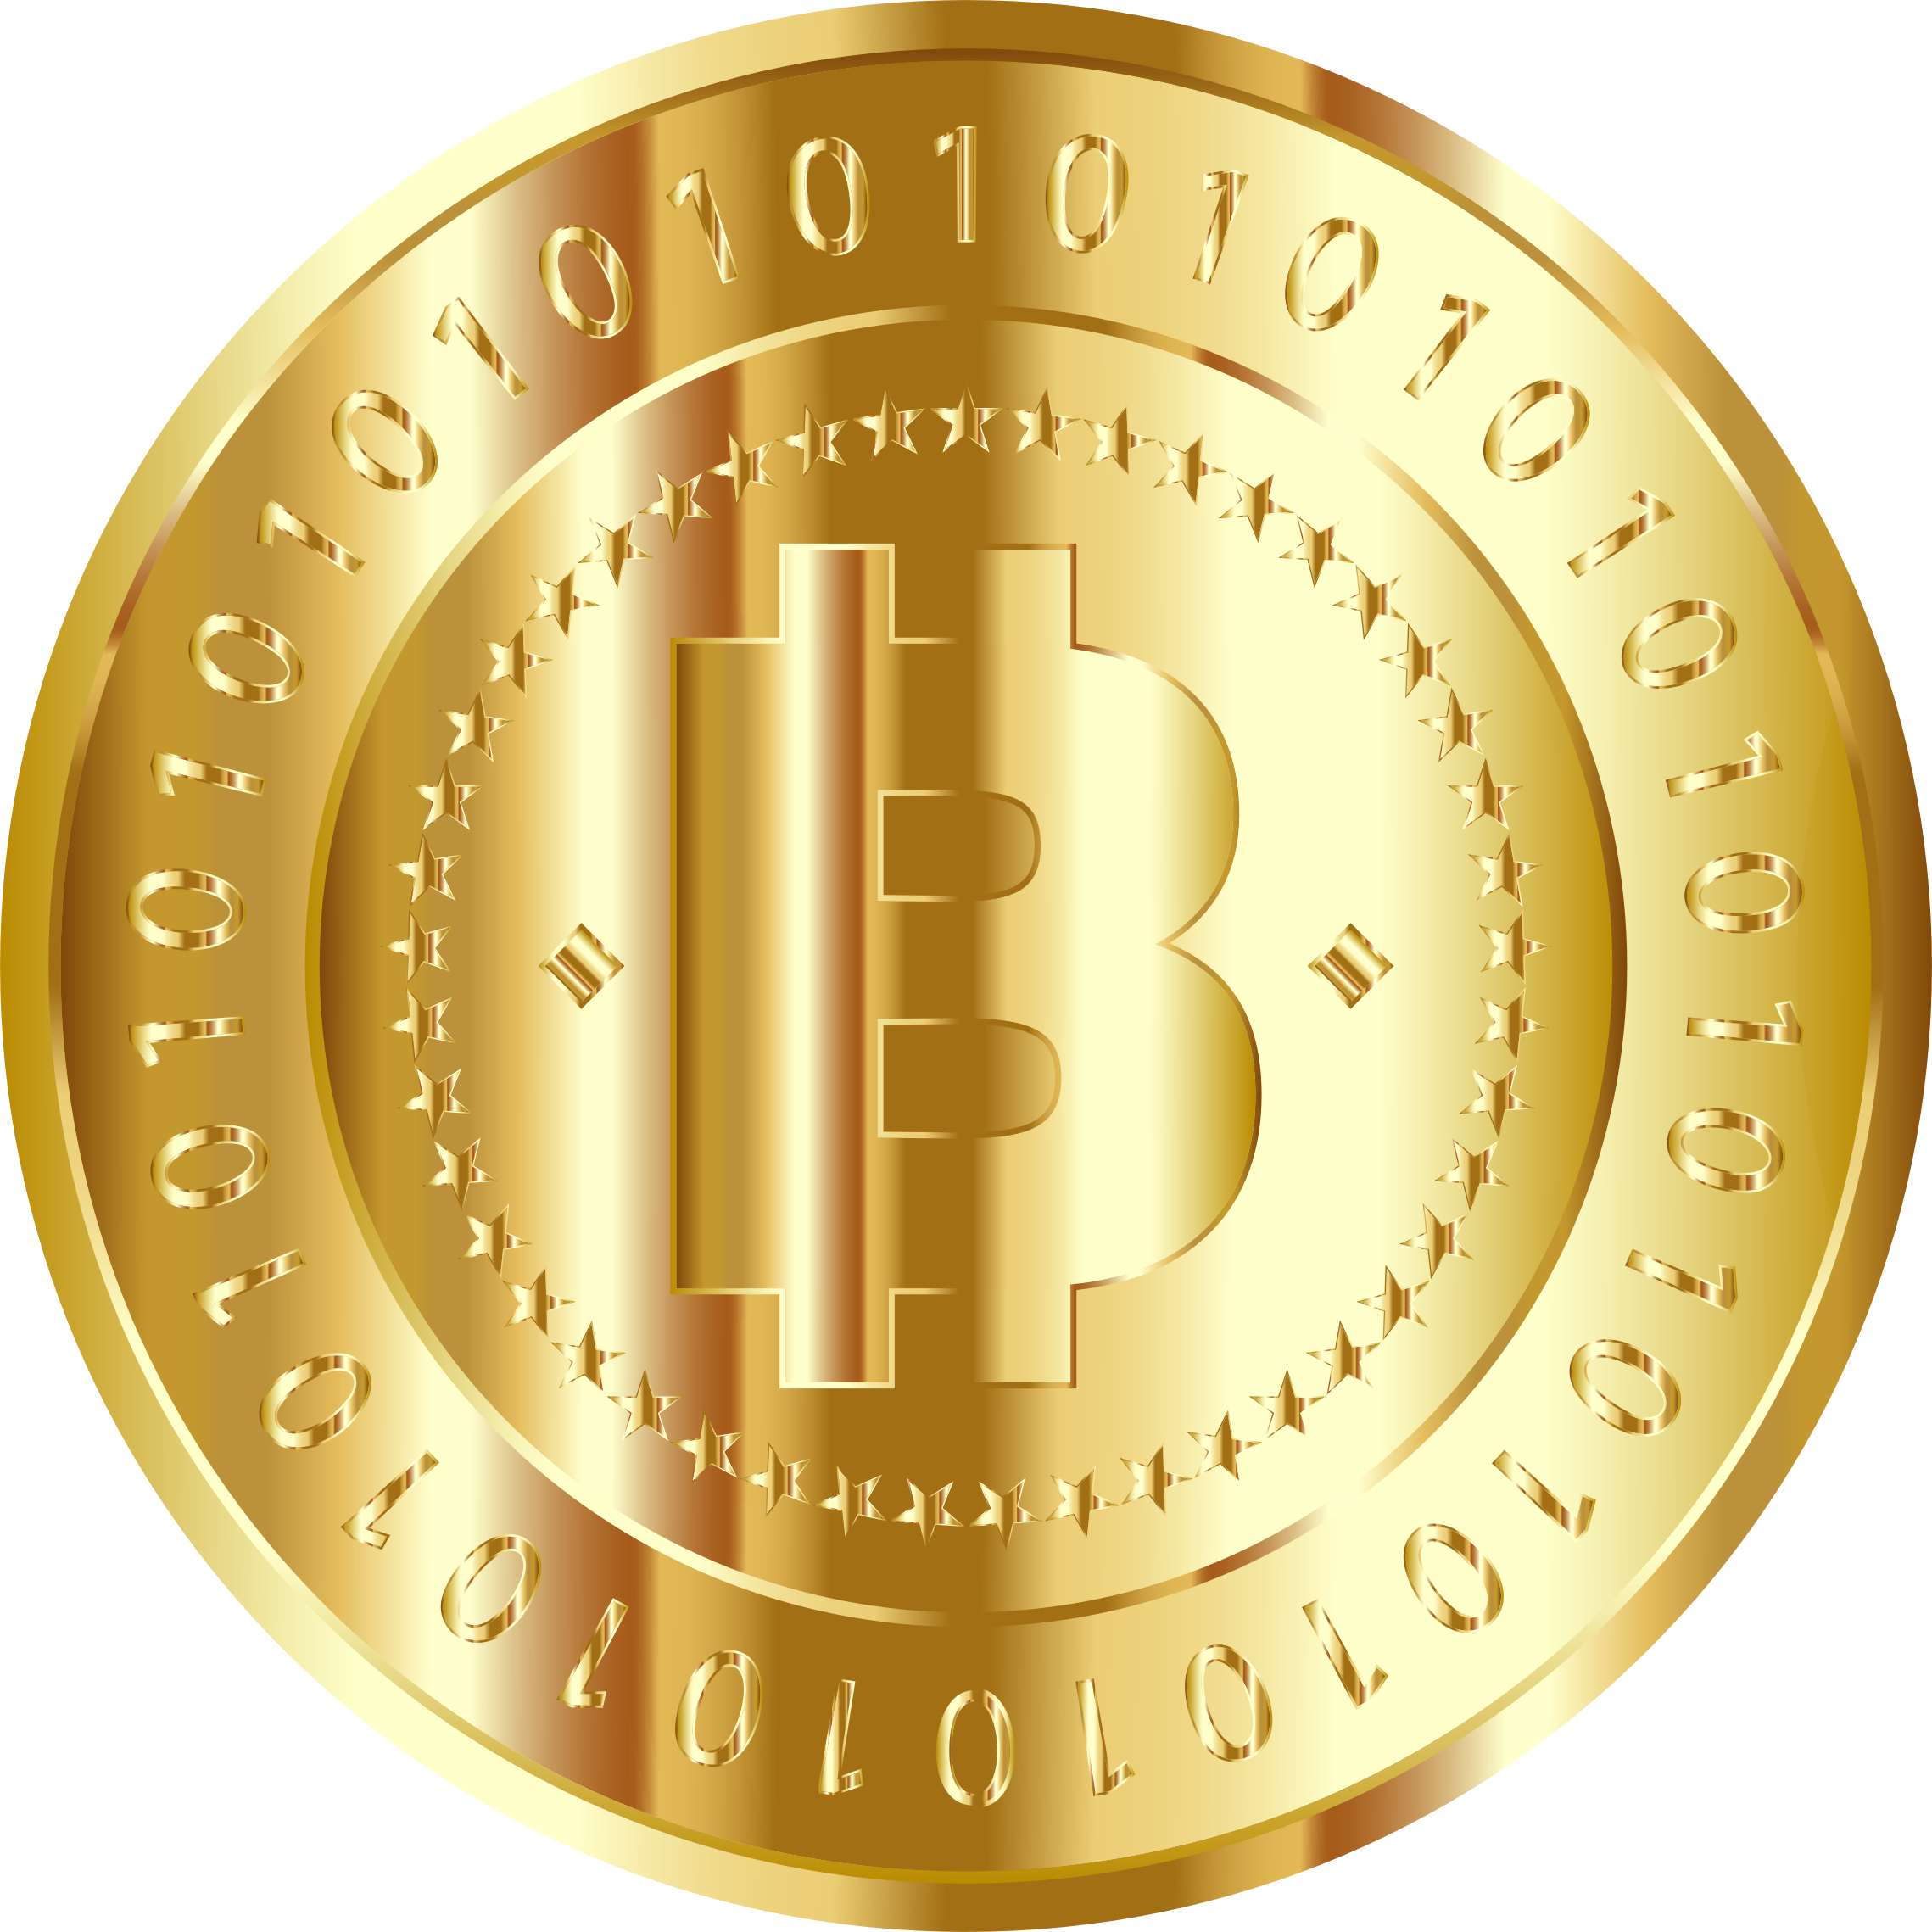 Exchanigng money for gold clipart jpg freeuse Clipart - Gold Bitcoin jpg freeuse